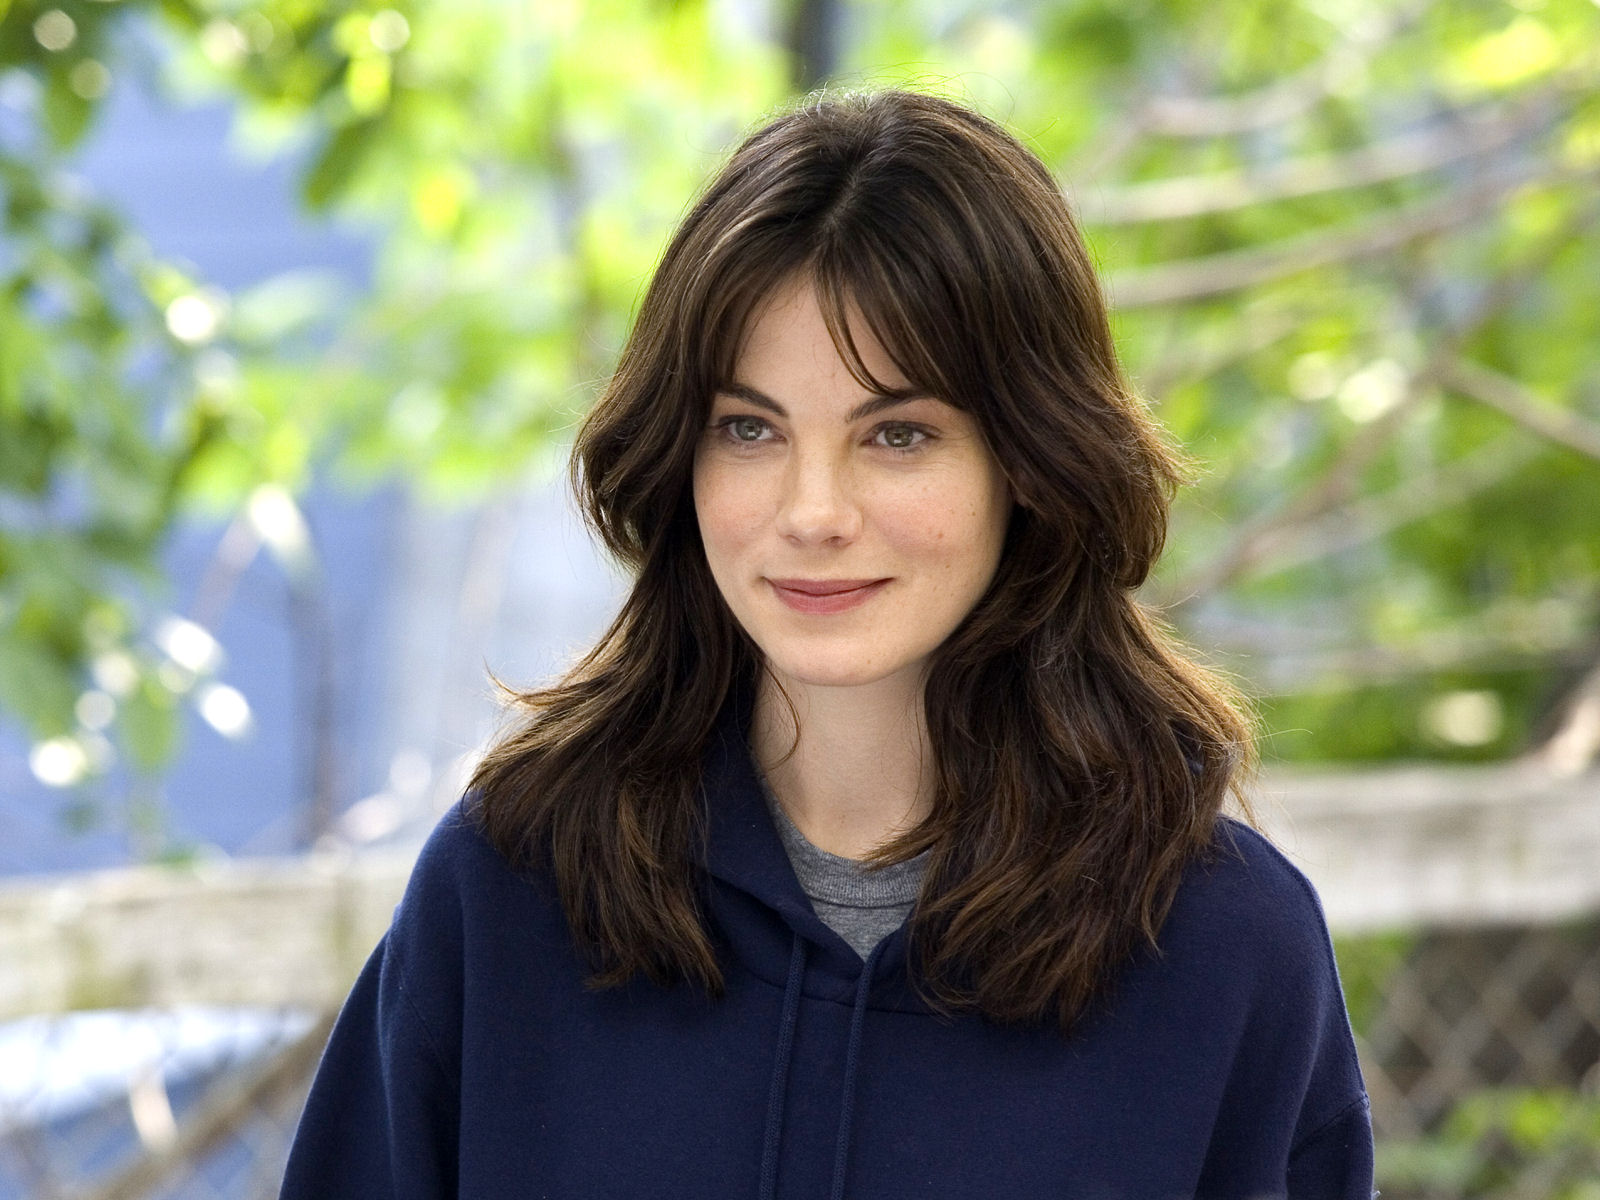 Michelle Monaghan Wallpaper Pictures 53594 1600x1200 px ...